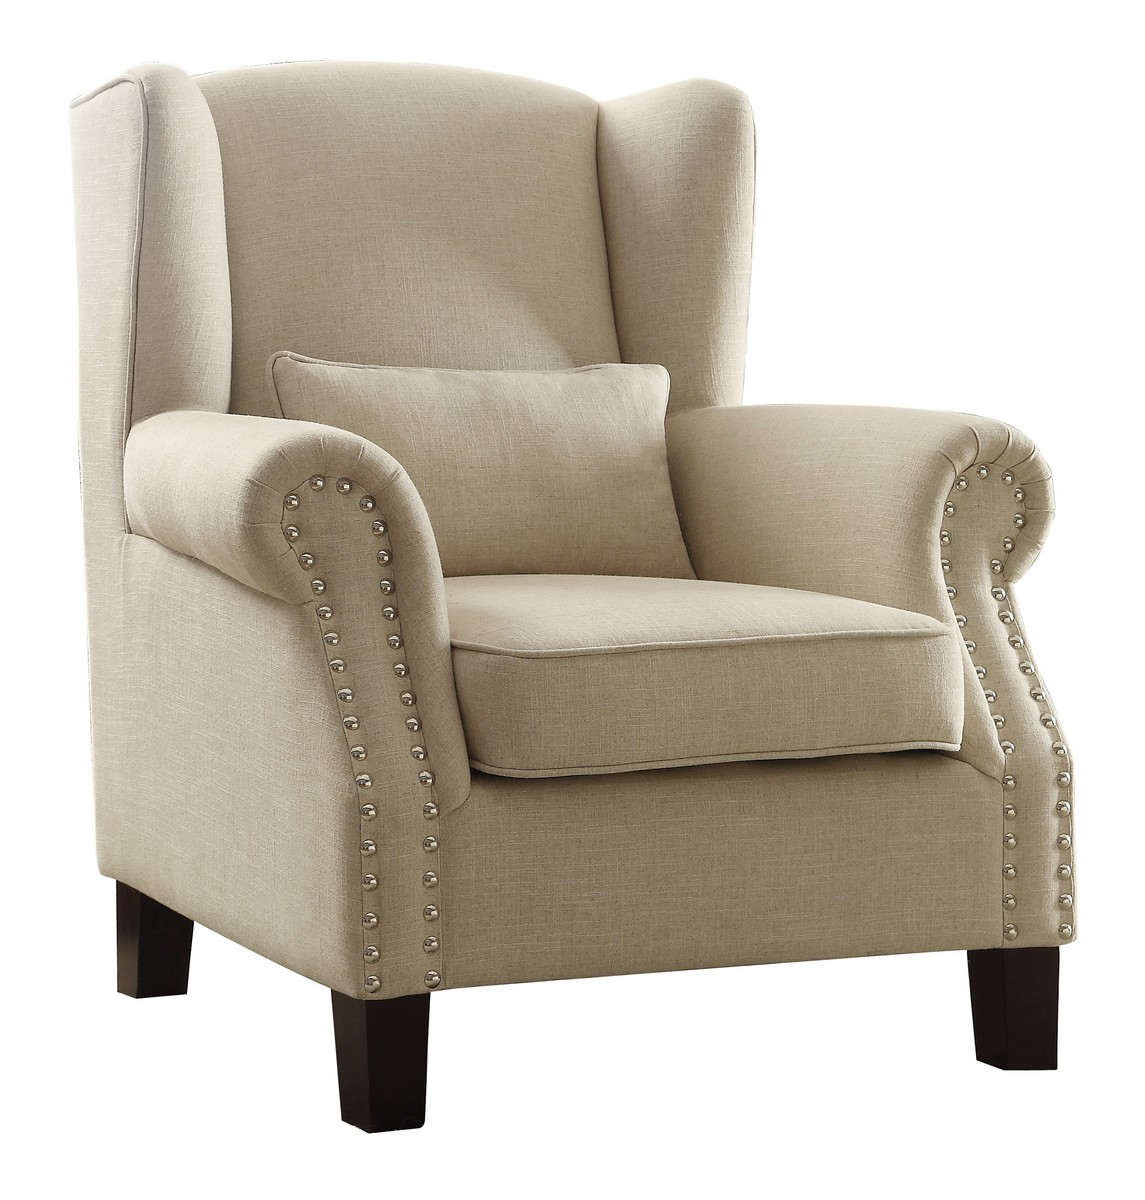 Homelegance Adelaide Accent Chair with 1 Kidney Pillow - Linen-like fabric - Light Neutral